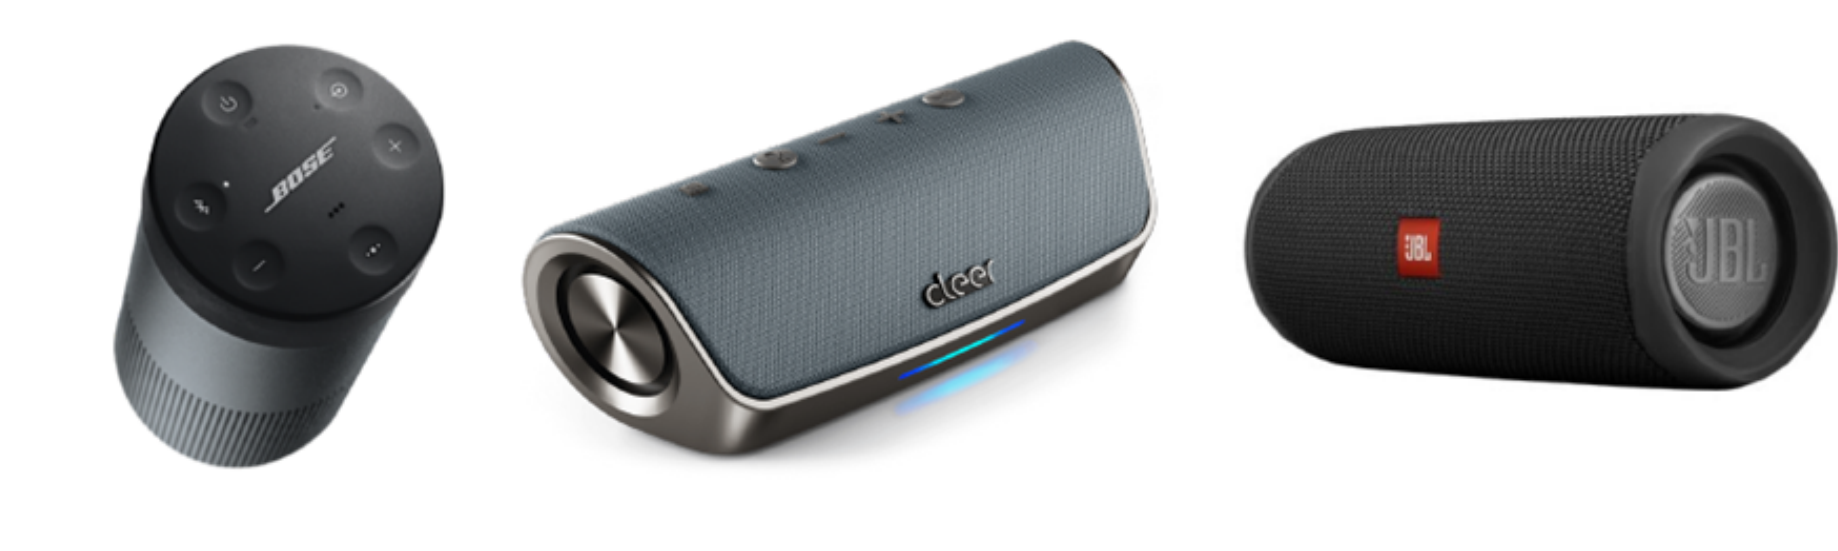 Your Roundup Of The Coolest Portable Bluetooth Speakers A Buying Guide For Discerning Audio Listeners By Shirley Green Medium